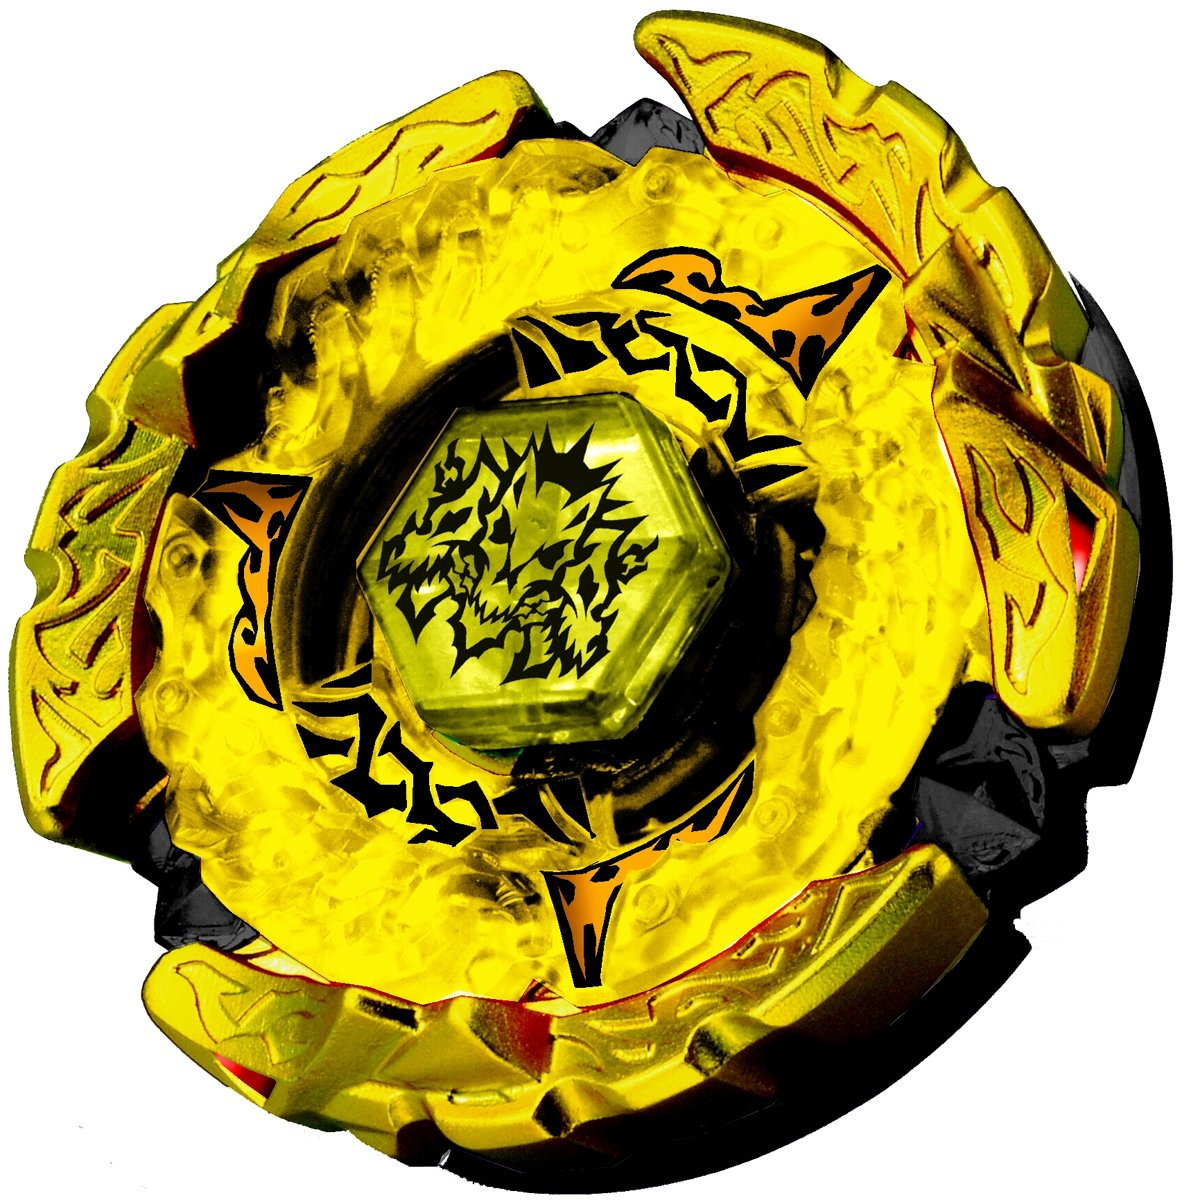 Takara Tomy BD145DS Beyblades Japanese Metal Fusion Battle Top Starter BB-99 B004774X5U